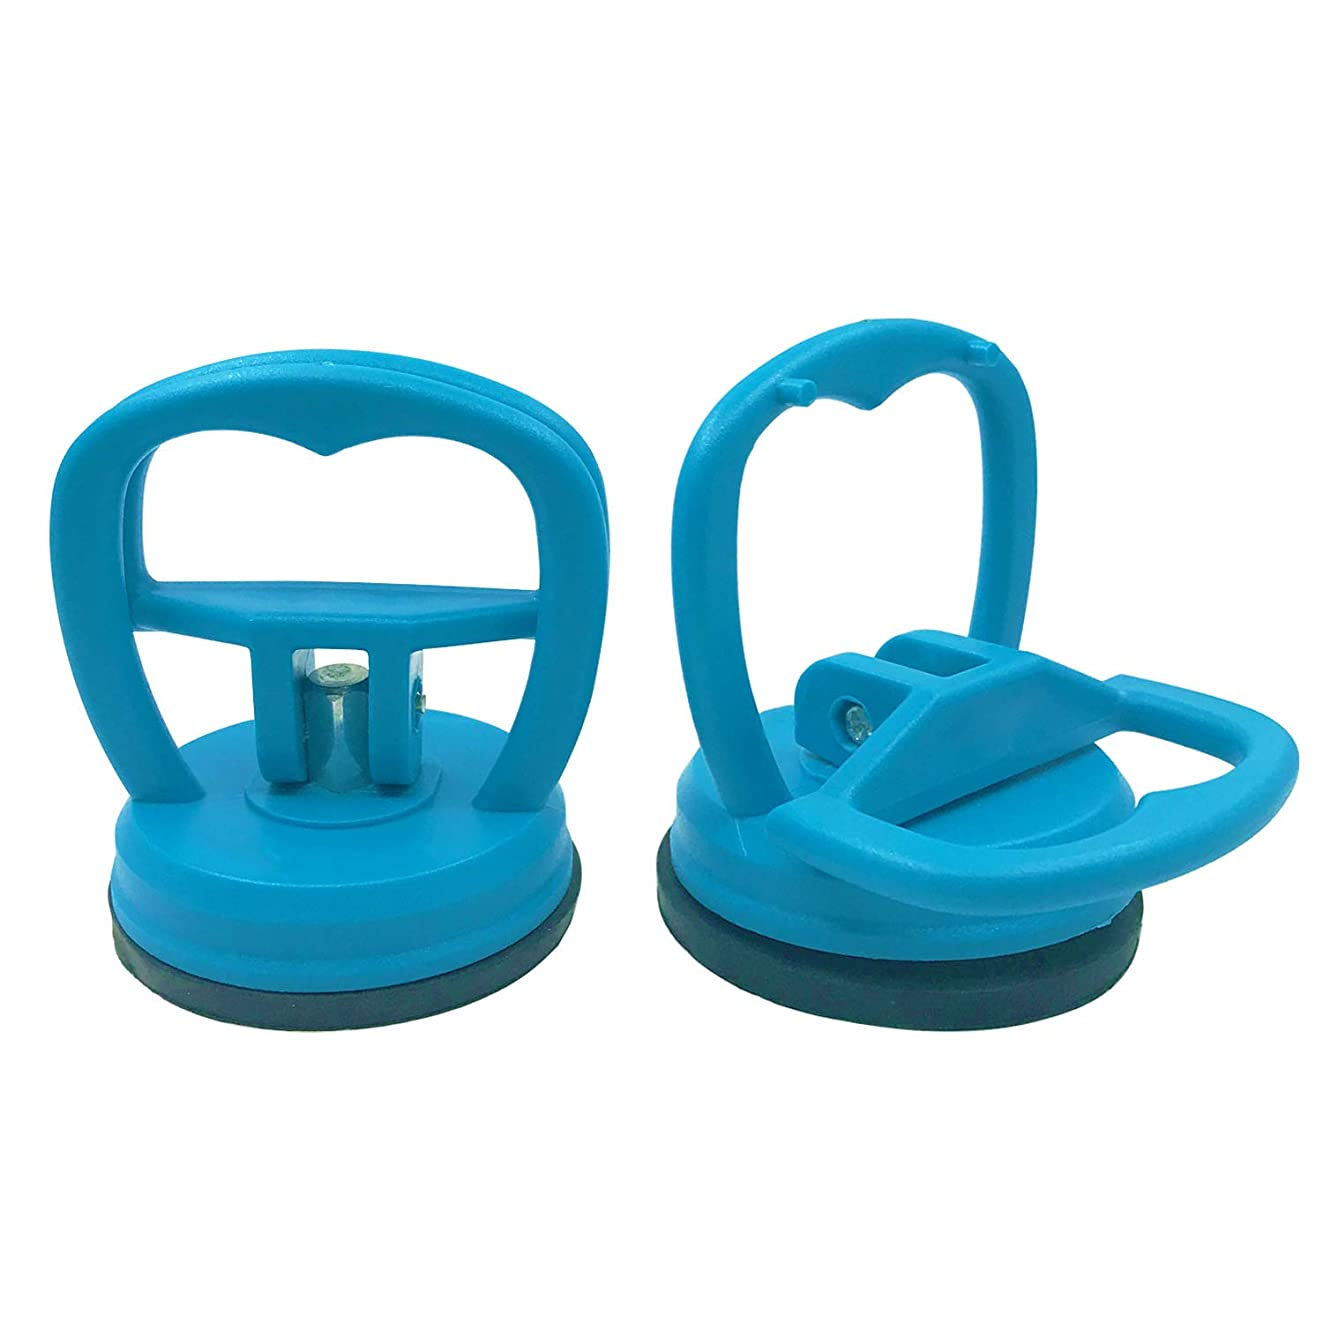 Arayker Screen Suction Cups Phone and Computer Screen Opening Tool for Open Cellphone, iMac, MacBook, iPad, Laptops, Tablets PC Screen, LCD Screen Opening and Removal Suction Cup - 2Pack, Blue